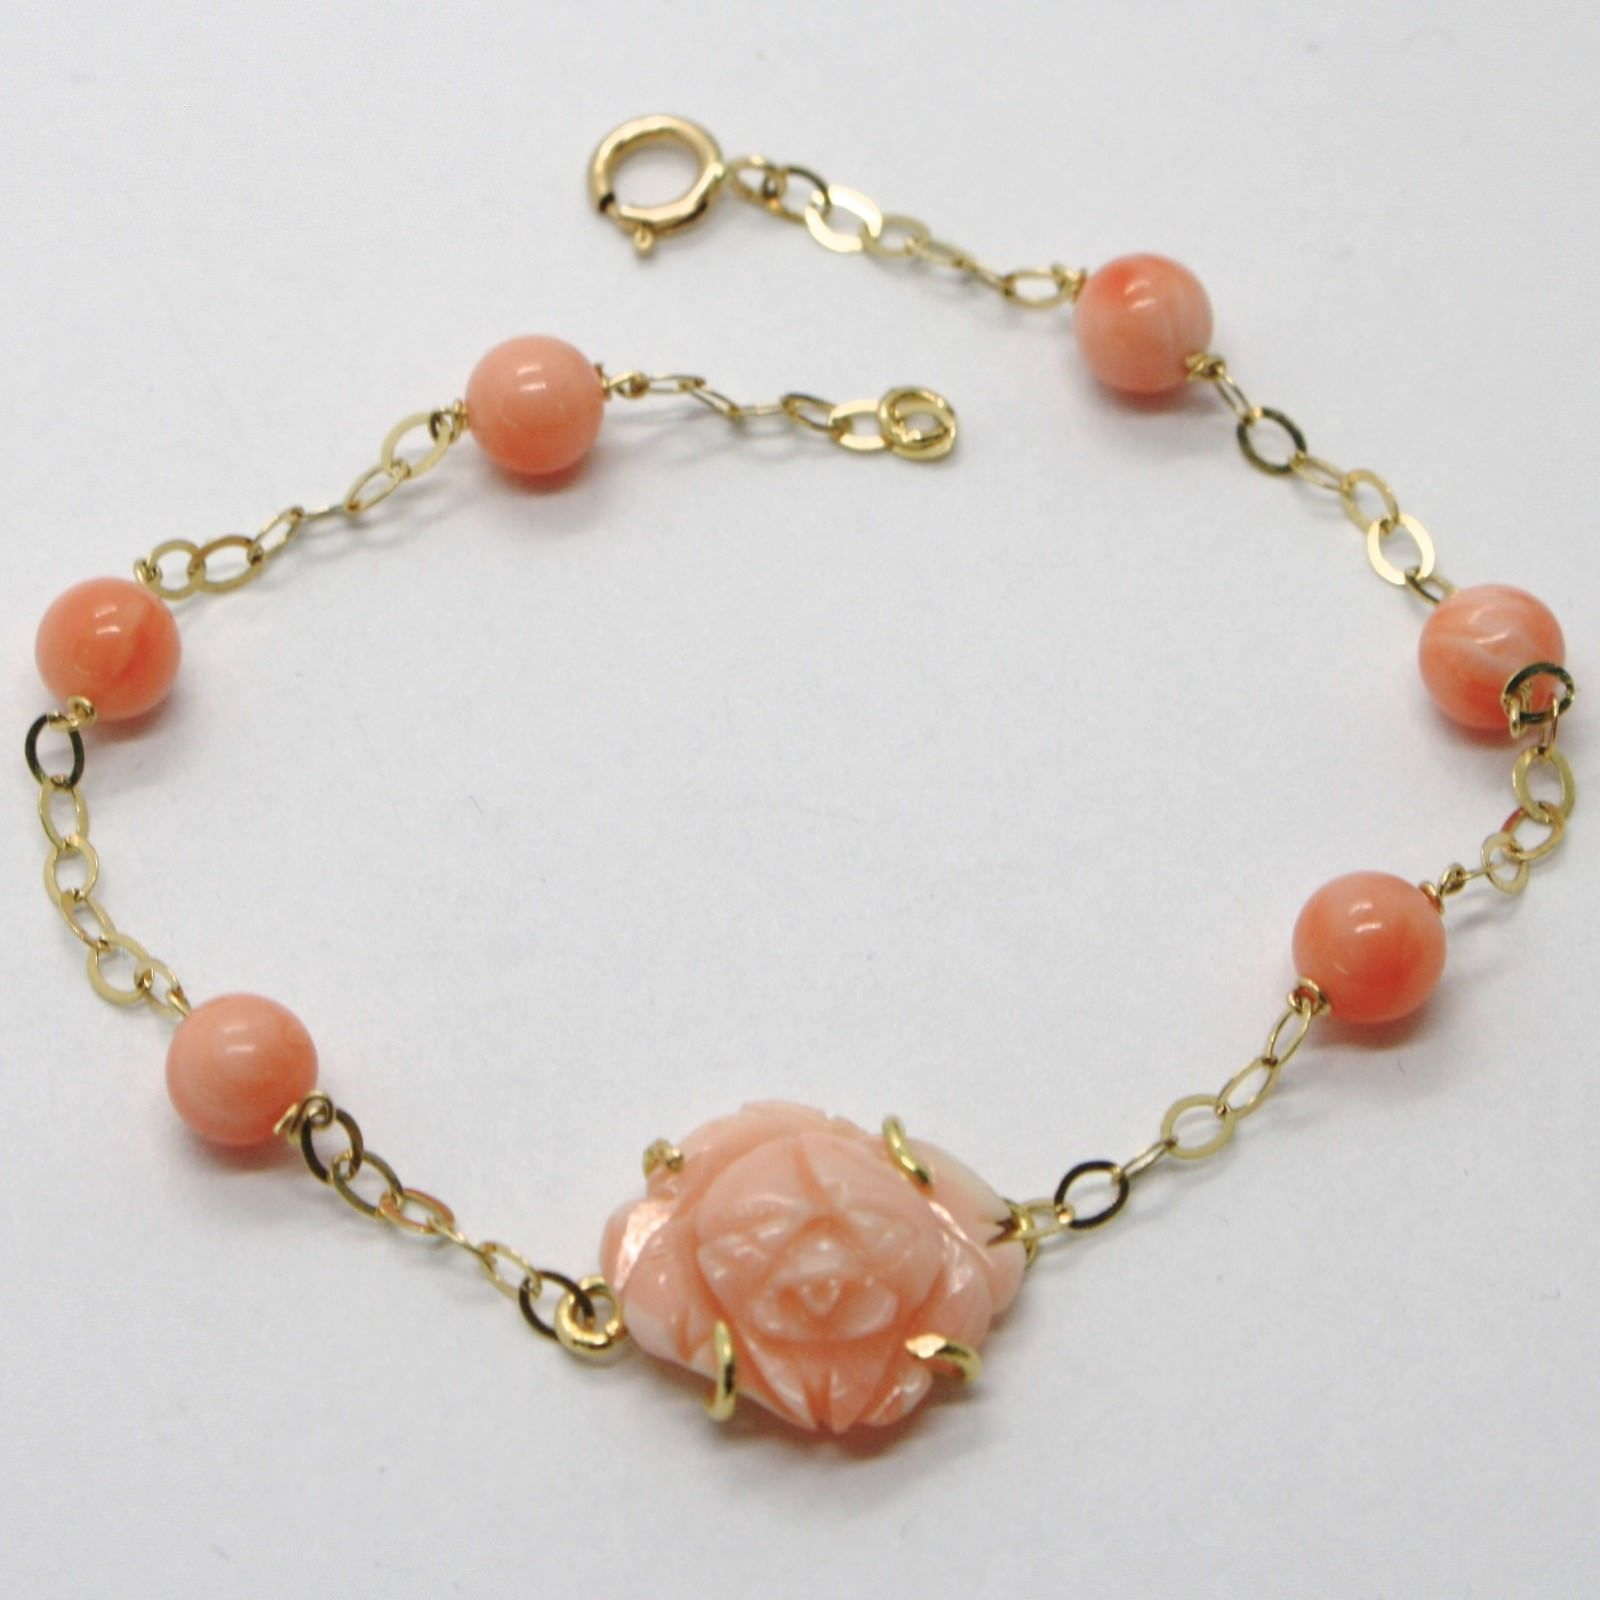 BRACELET YELLOW GOLD 18K 750 CORAL PINK NATURAL FLOWER-SHAPED MADE IN ITALY